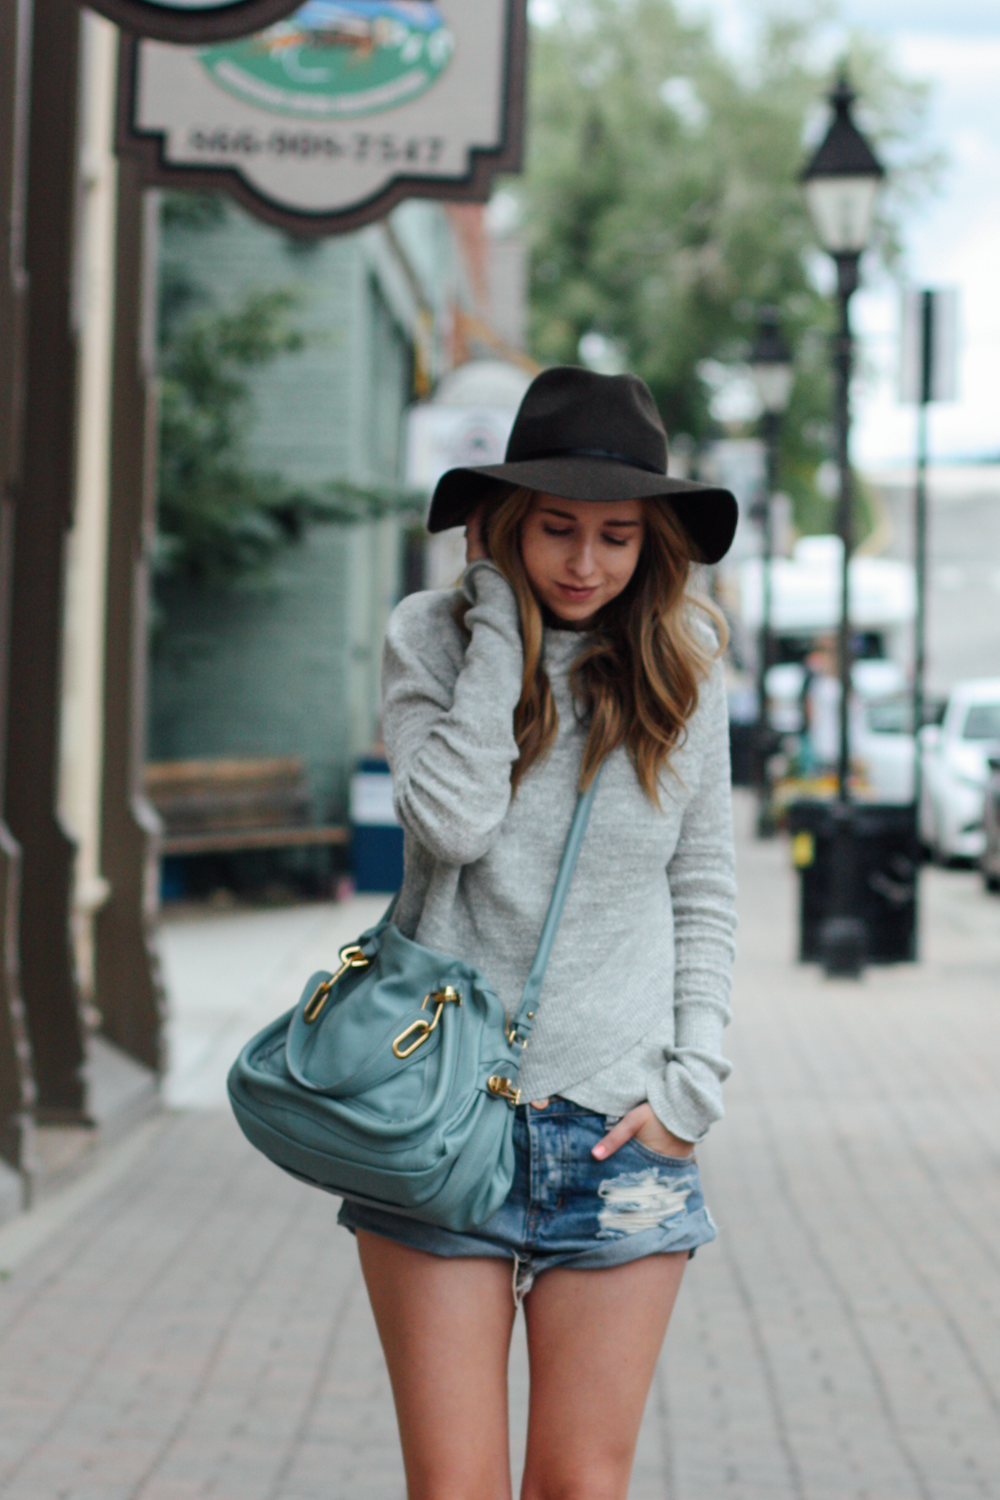 Free People sweater, Chloe bag, One Teaspoon shorts in Leadville, CO via truelane.png